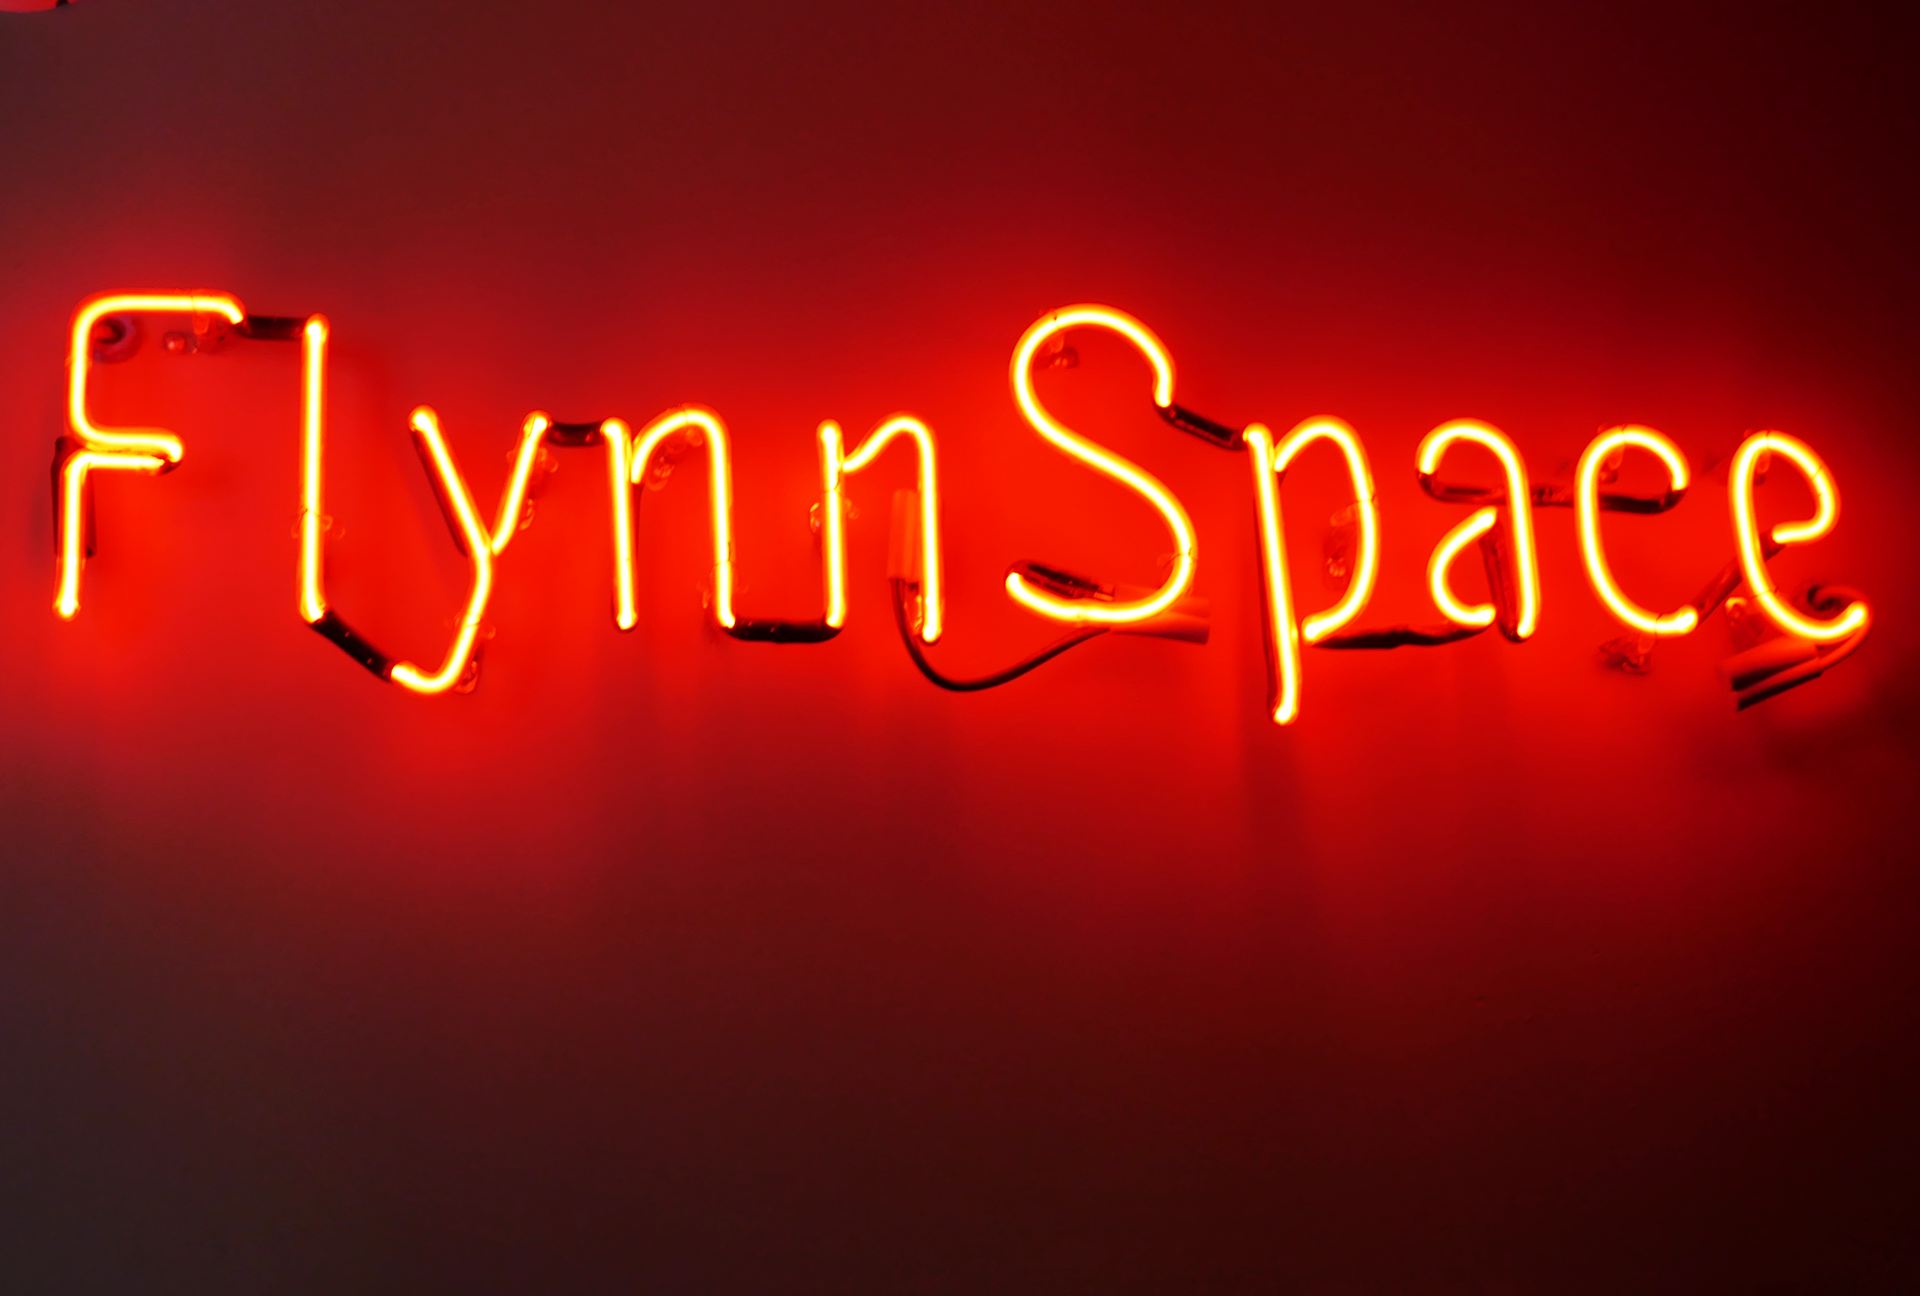 Flynn Space neon sign.